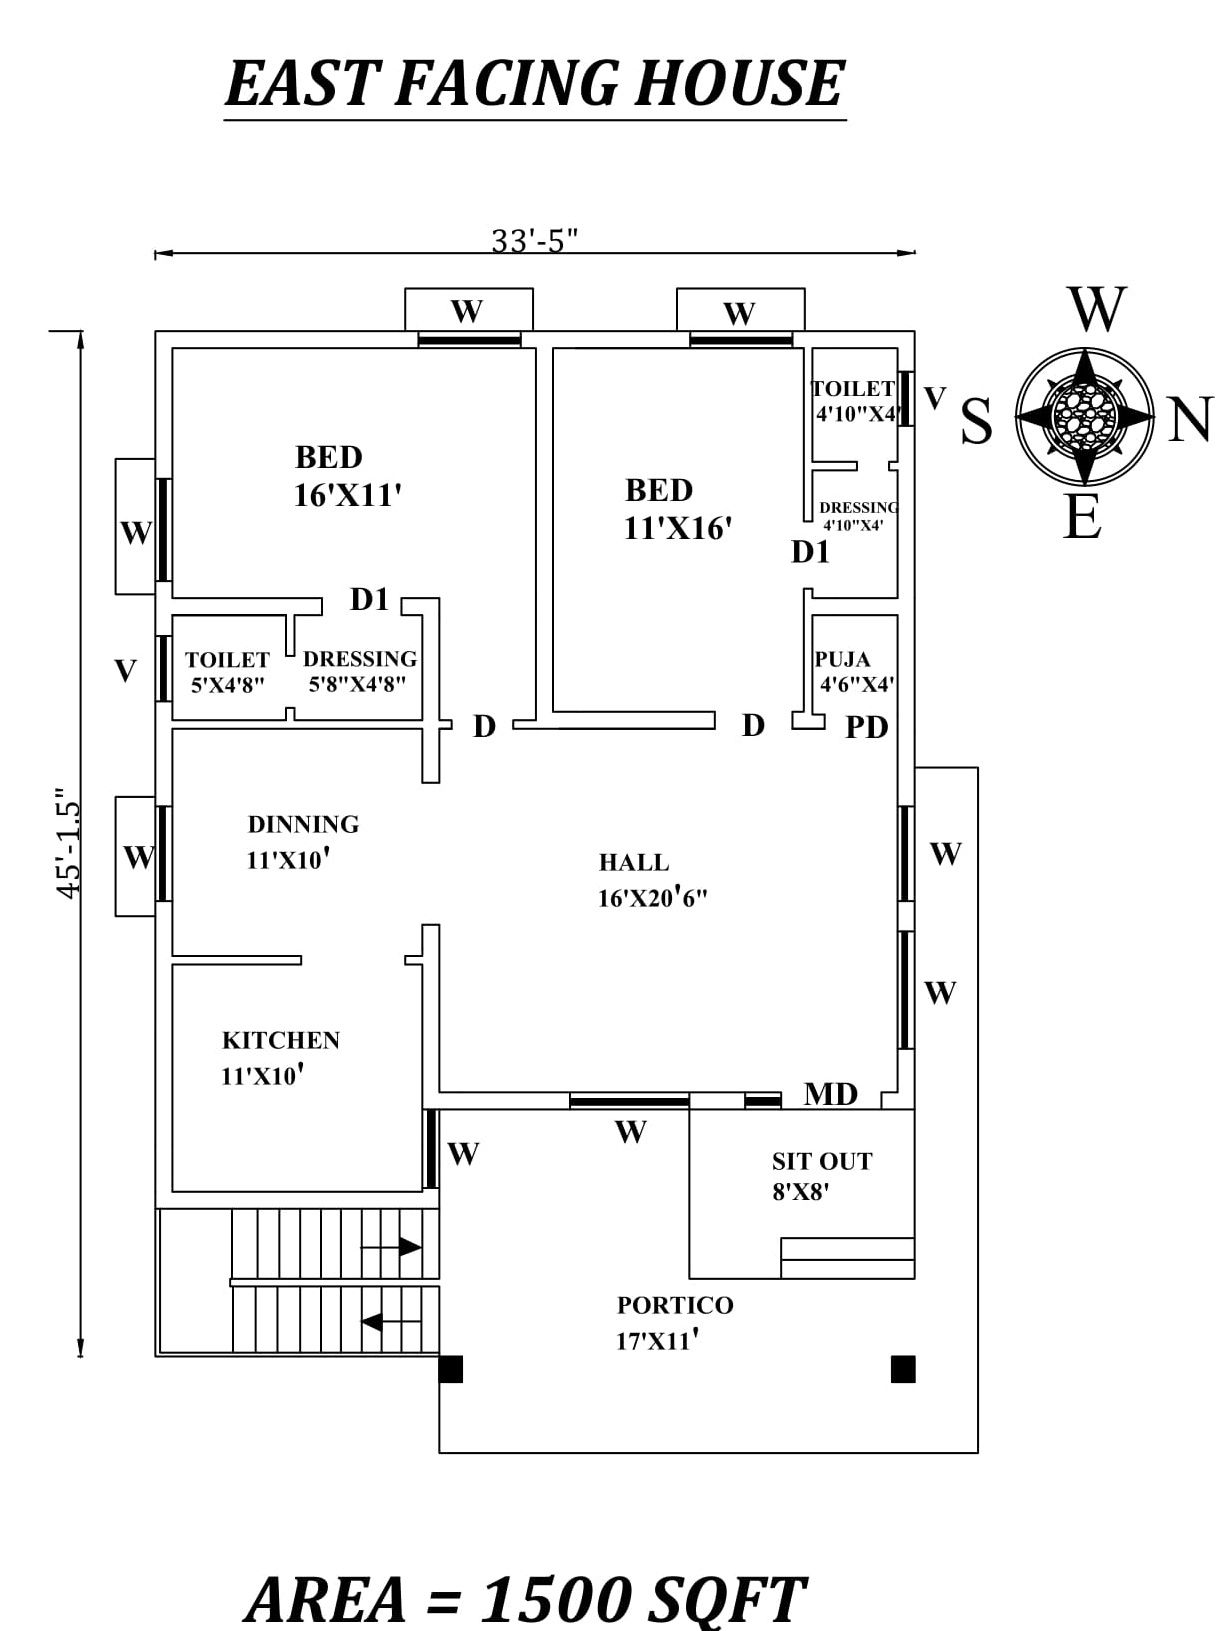 Autocad Drawing File Shows 33 5 In 2020 2bhk House Plan Family House Plans 20x30 House Plans